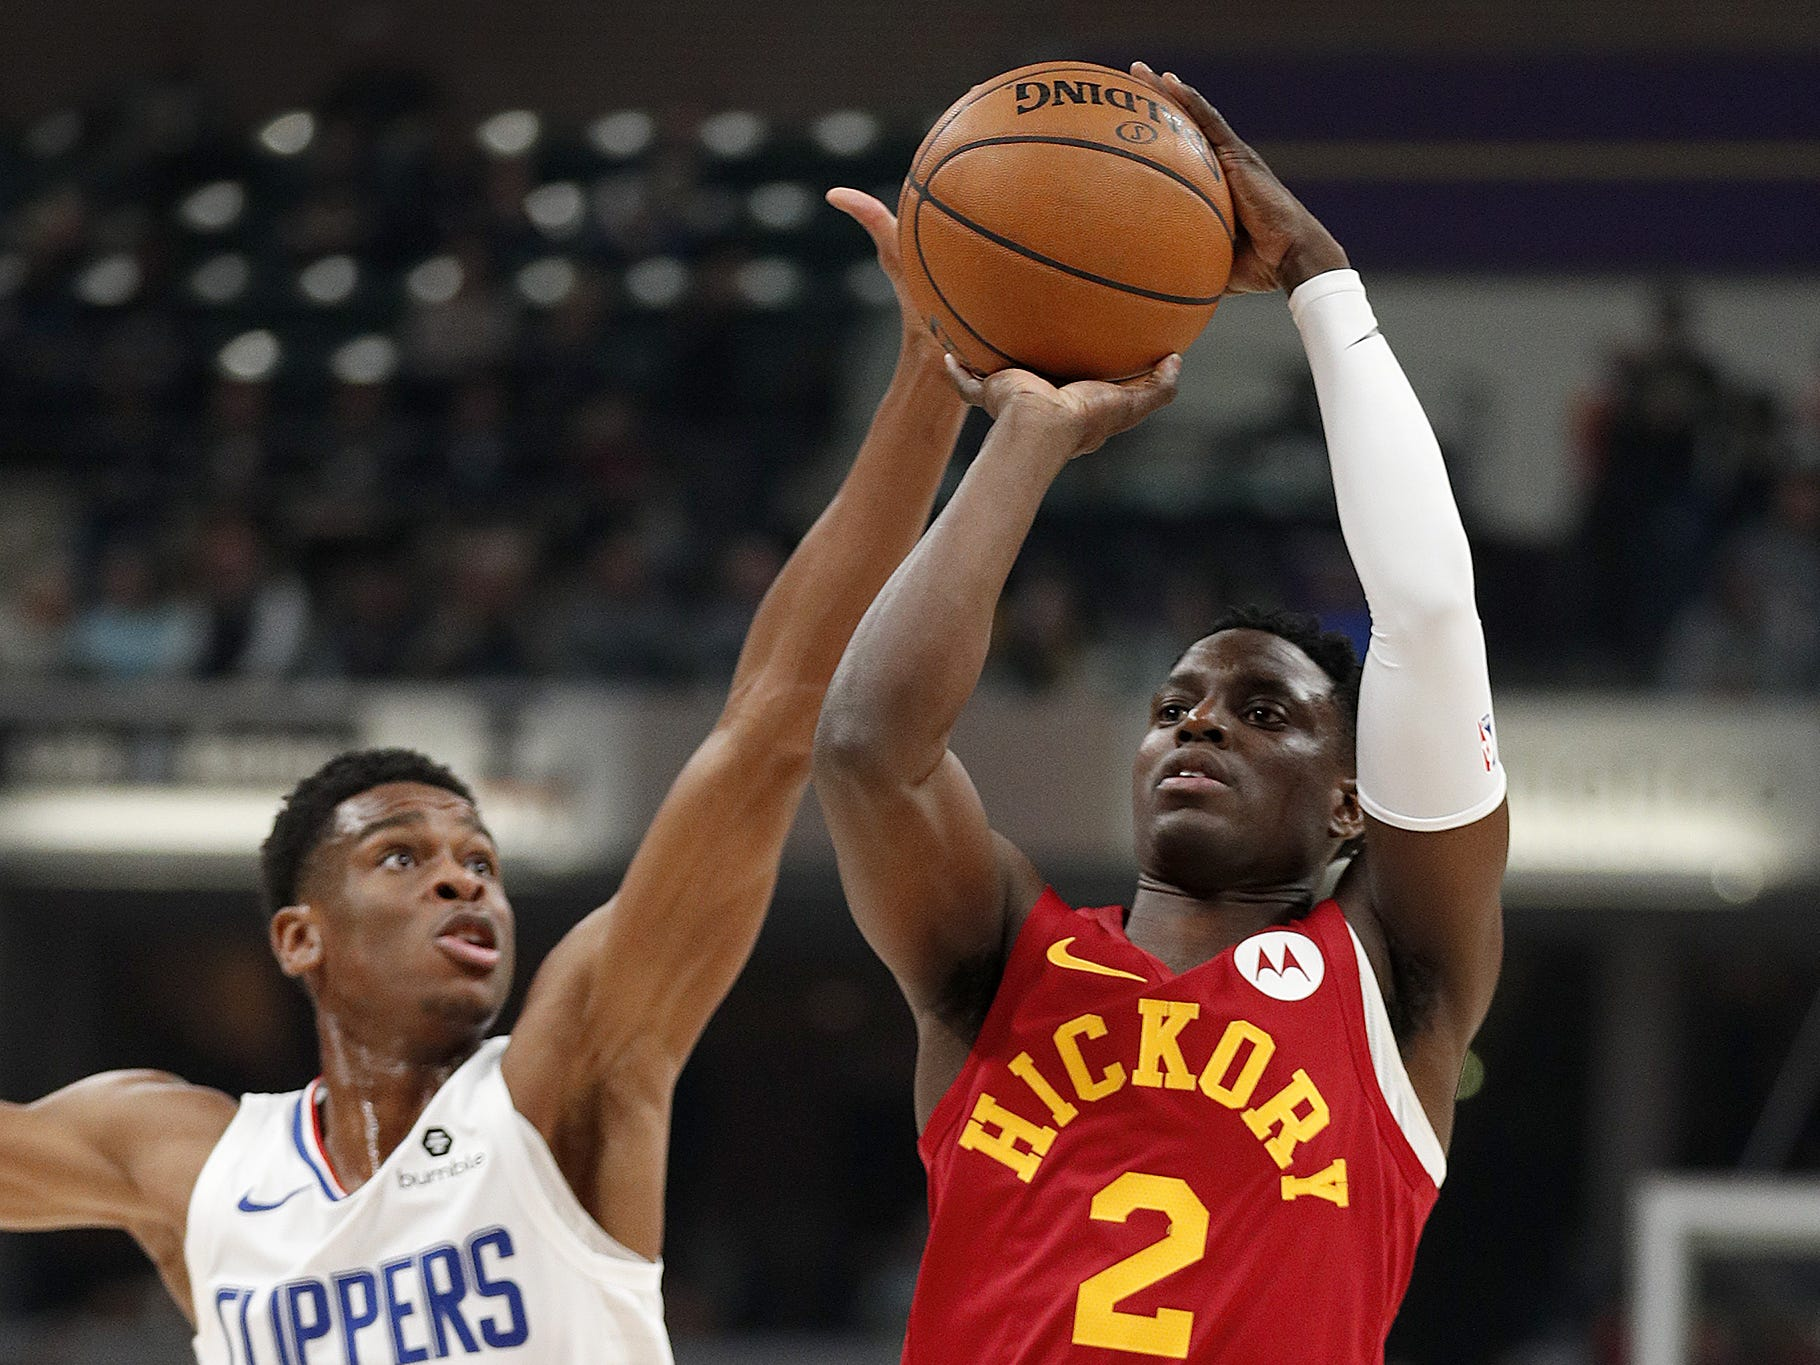 Indiana Pacers guard Darren Collison (2) shoots over LA Clippers guard Shai Gilgeous-Alexander (2) in the first half of their game at Bankers Life Fieldhouse on Thursday, Feb. 7, 2019.